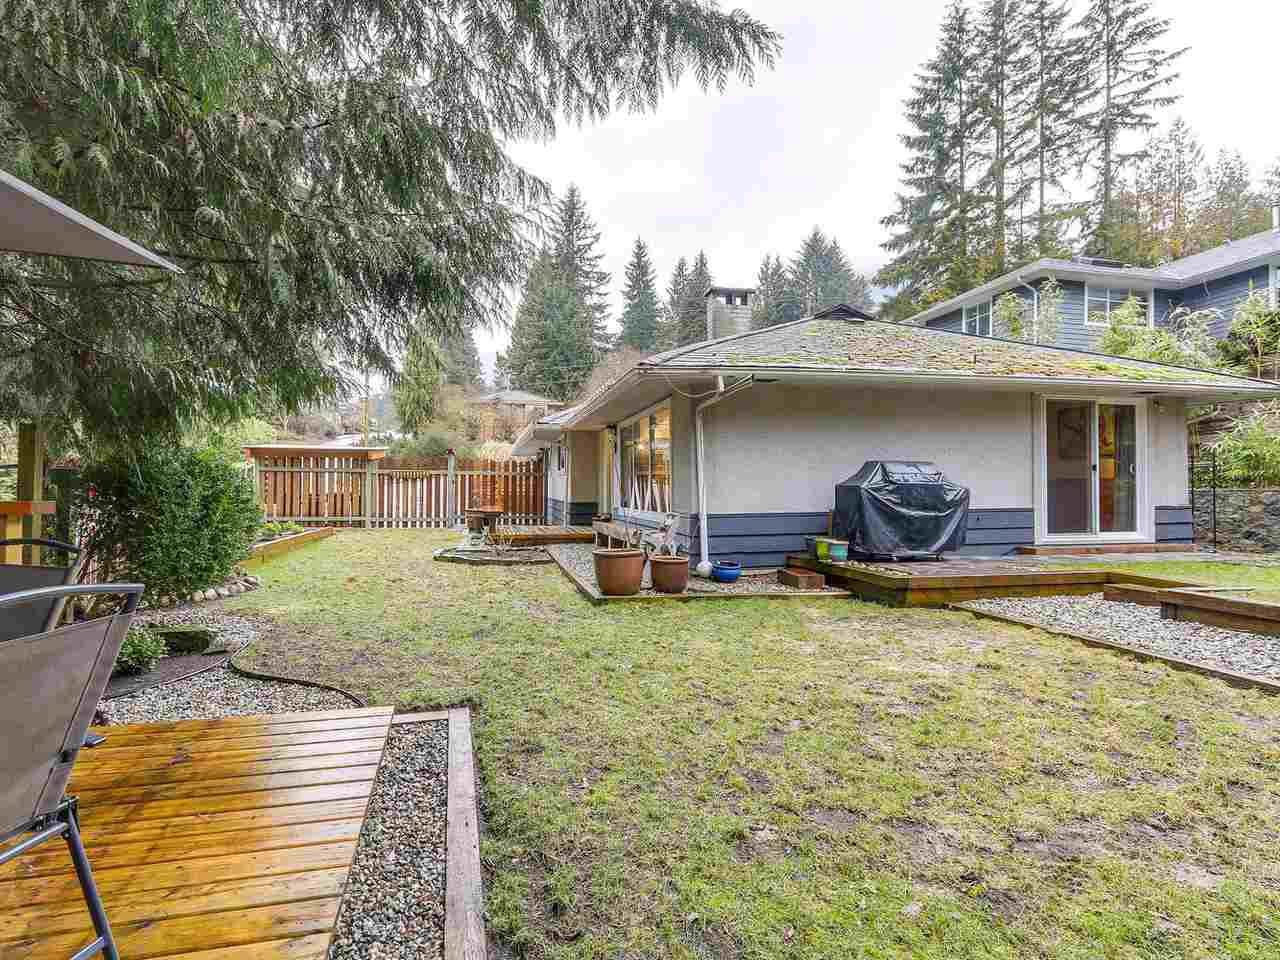 """Main Photo: 4982 CLIFFRIDGE Avenue in North Vancouver: Canyon Heights NV House for sale in """"Canyon Heights"""" : MLS®# R2143885"""